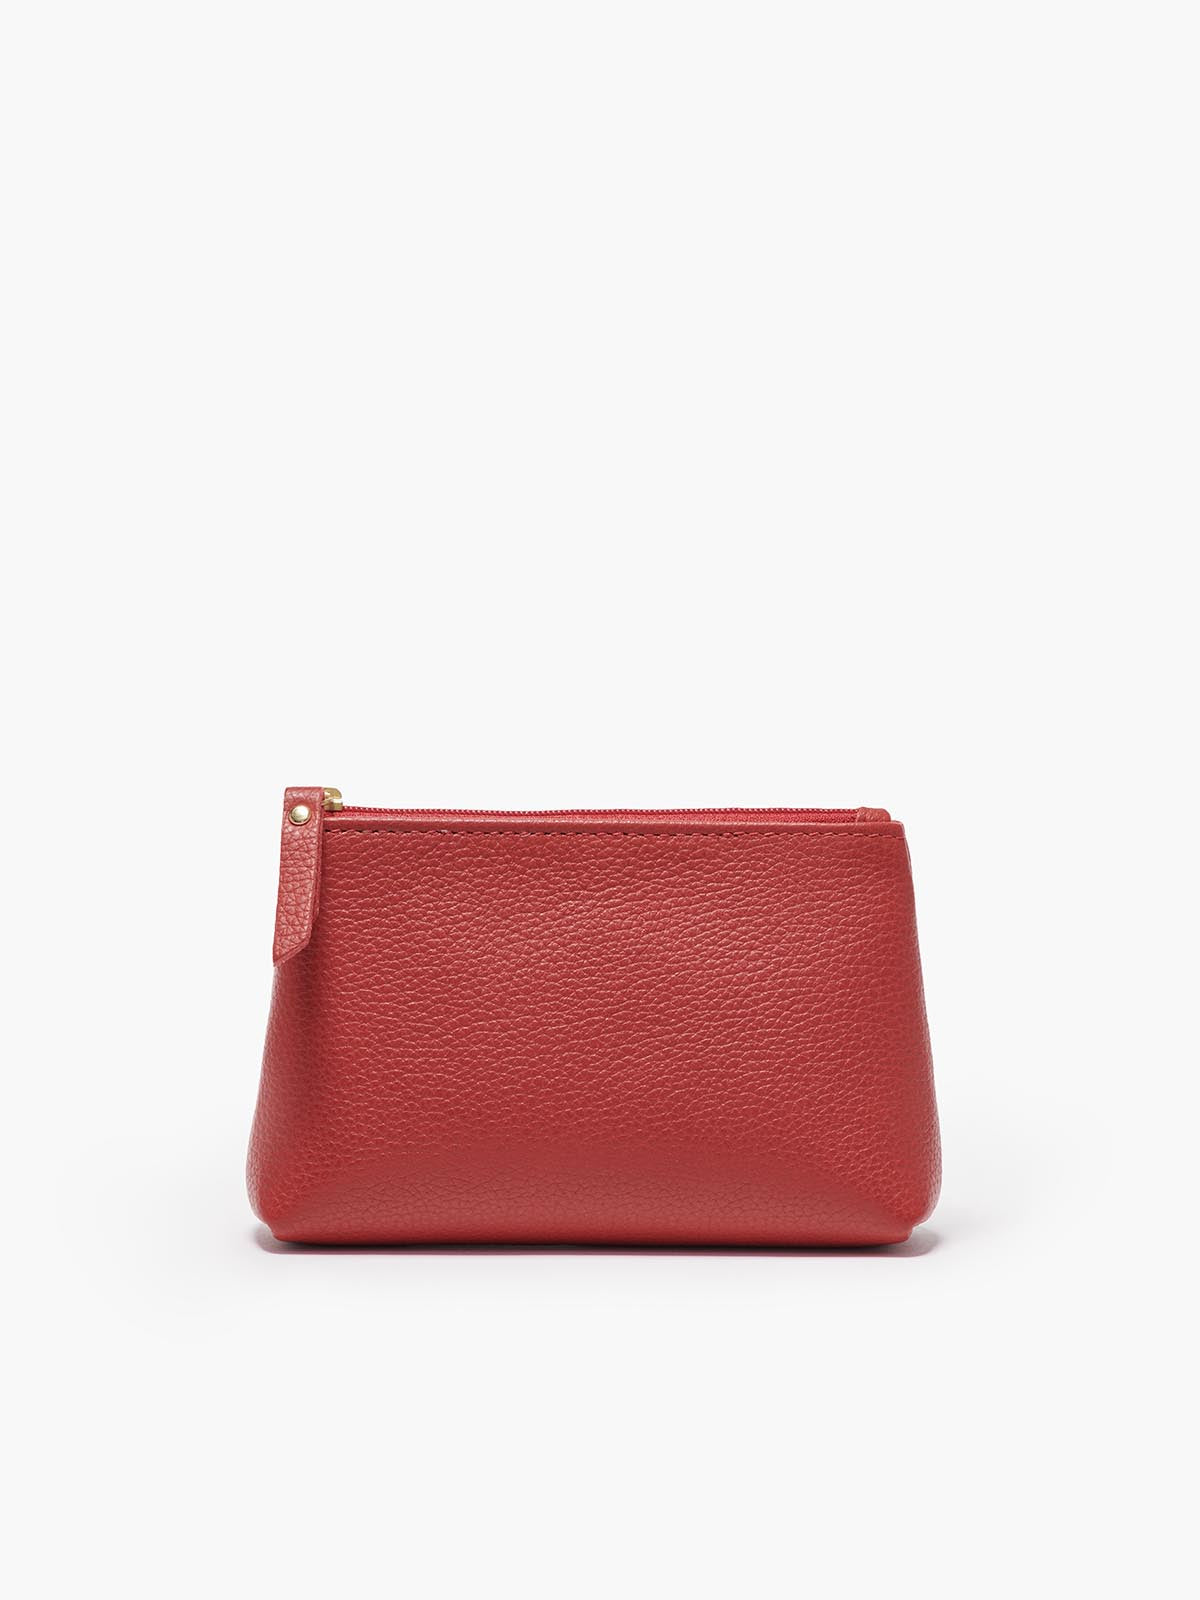 Small Leather Accessories Case in Color Red with a Zipper Closure and Gold Finishes